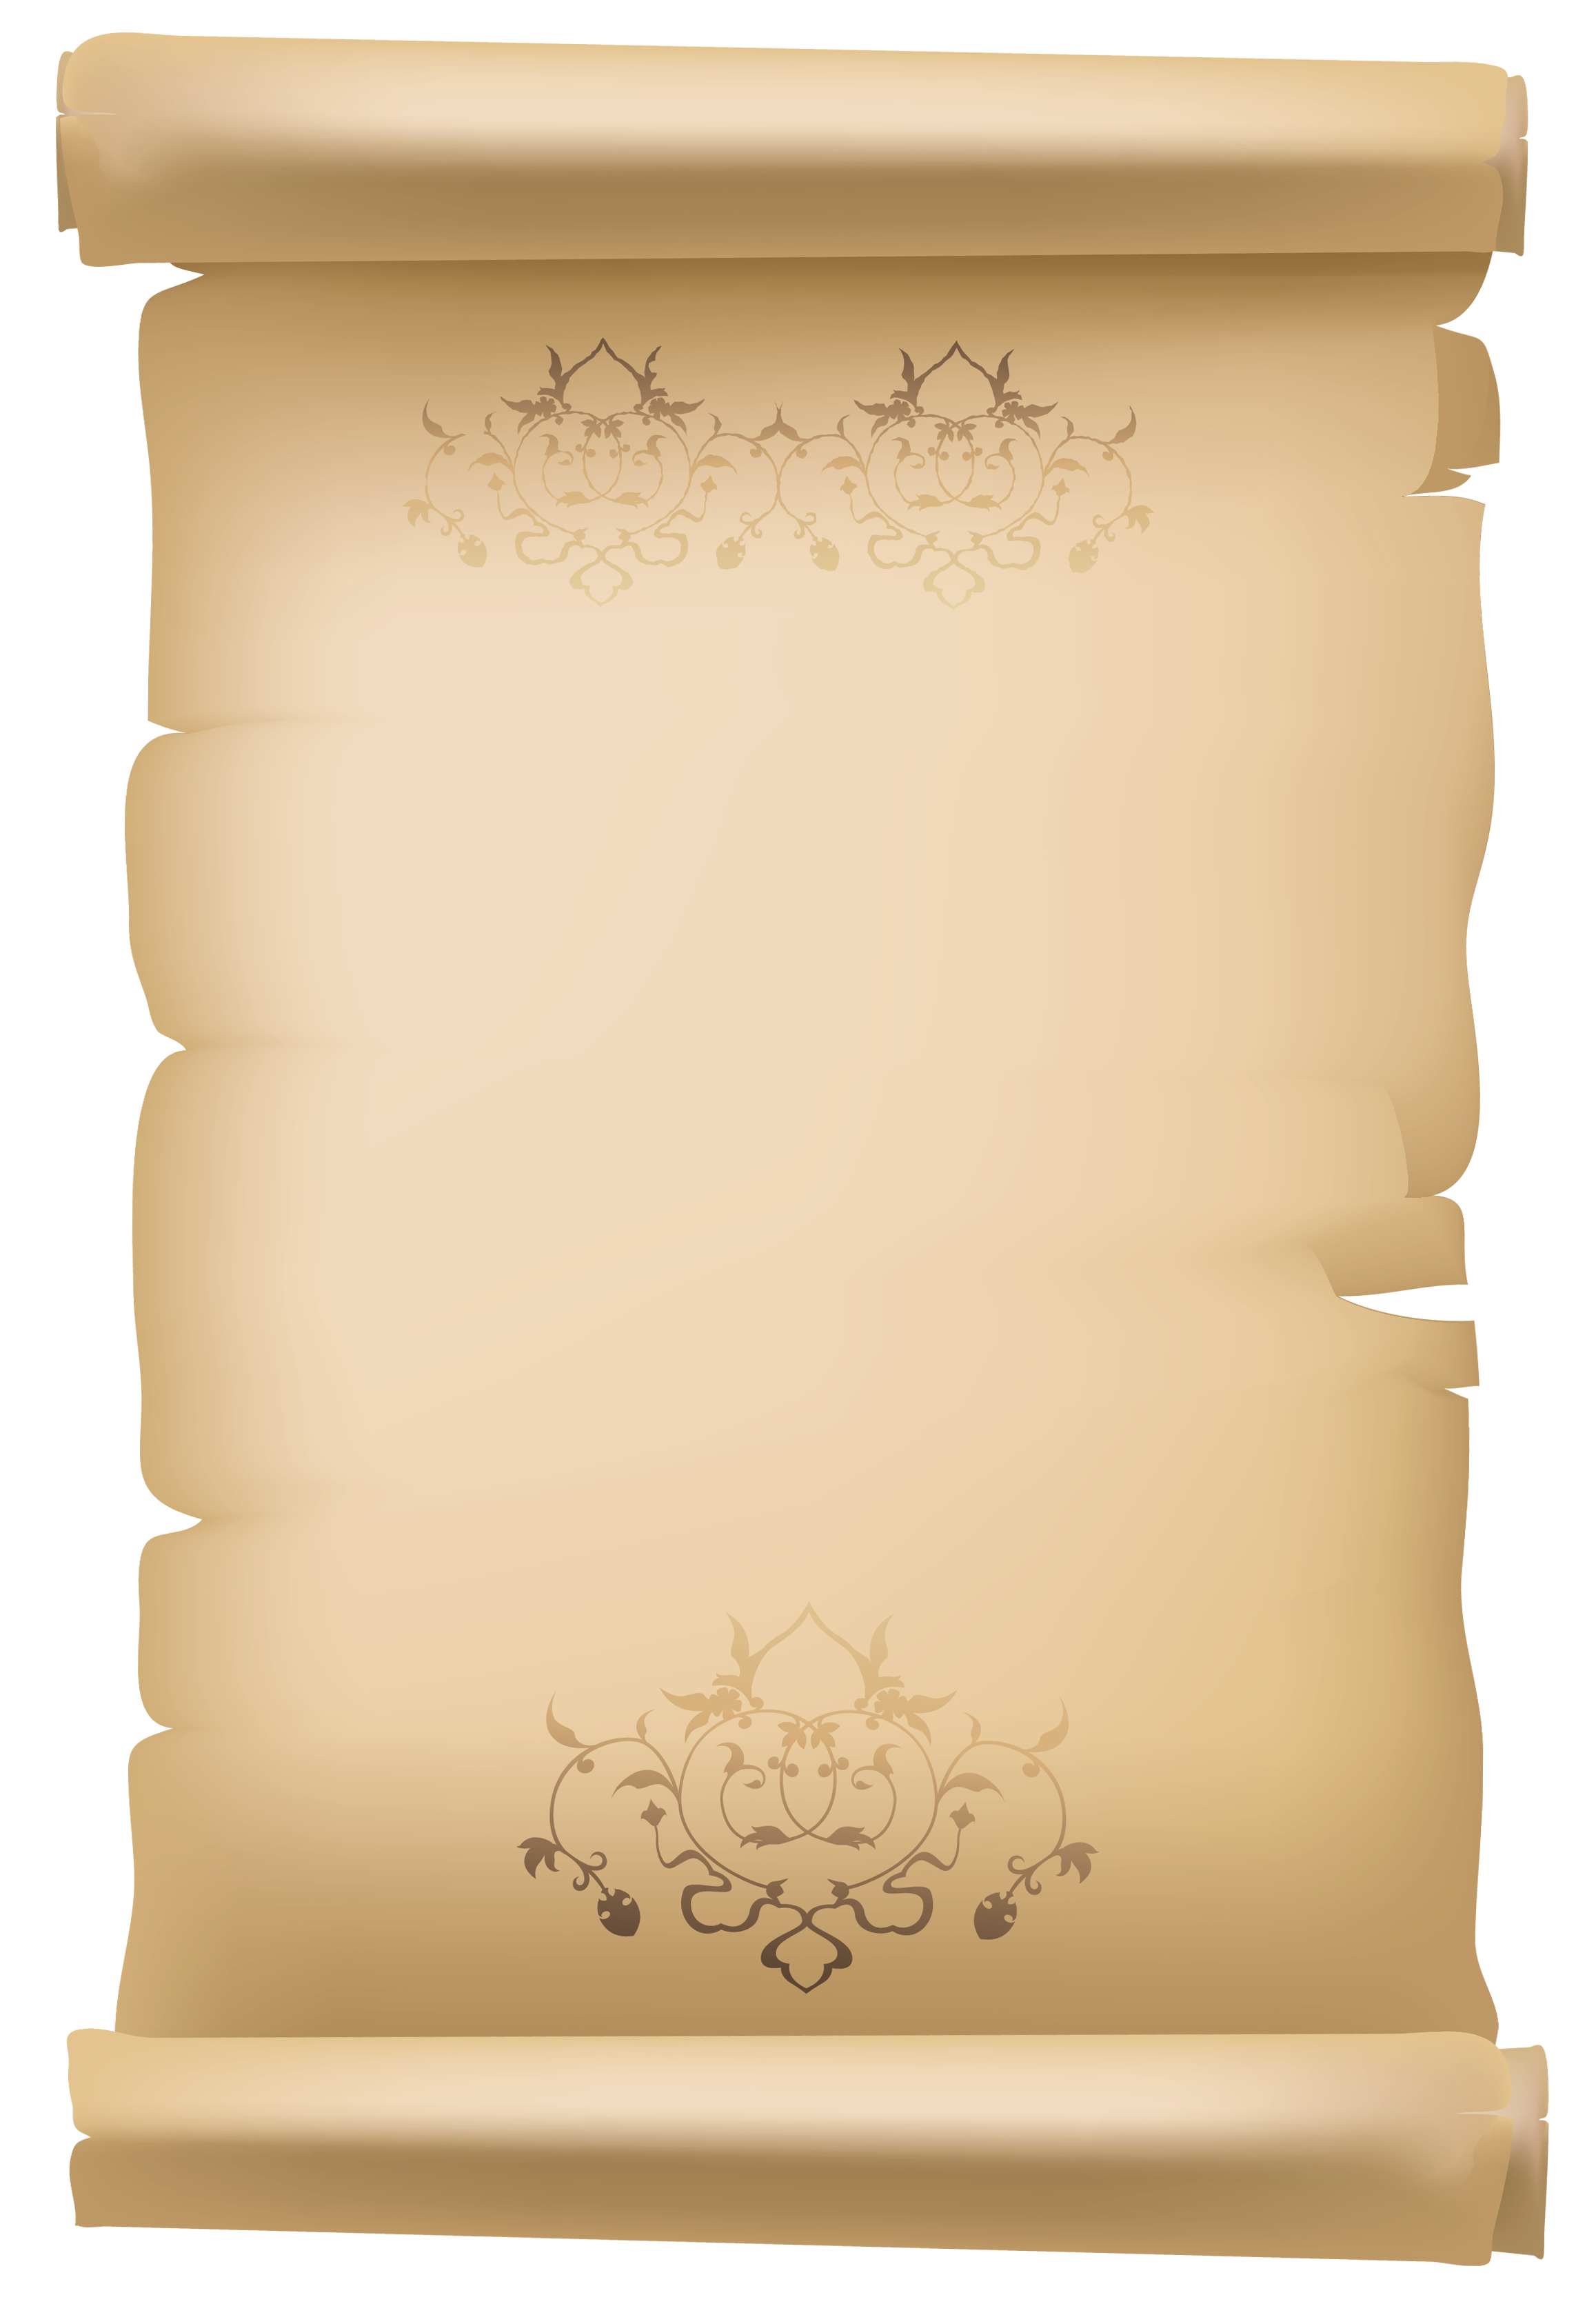 Decorative clipart scrolly. Scroll old paper png